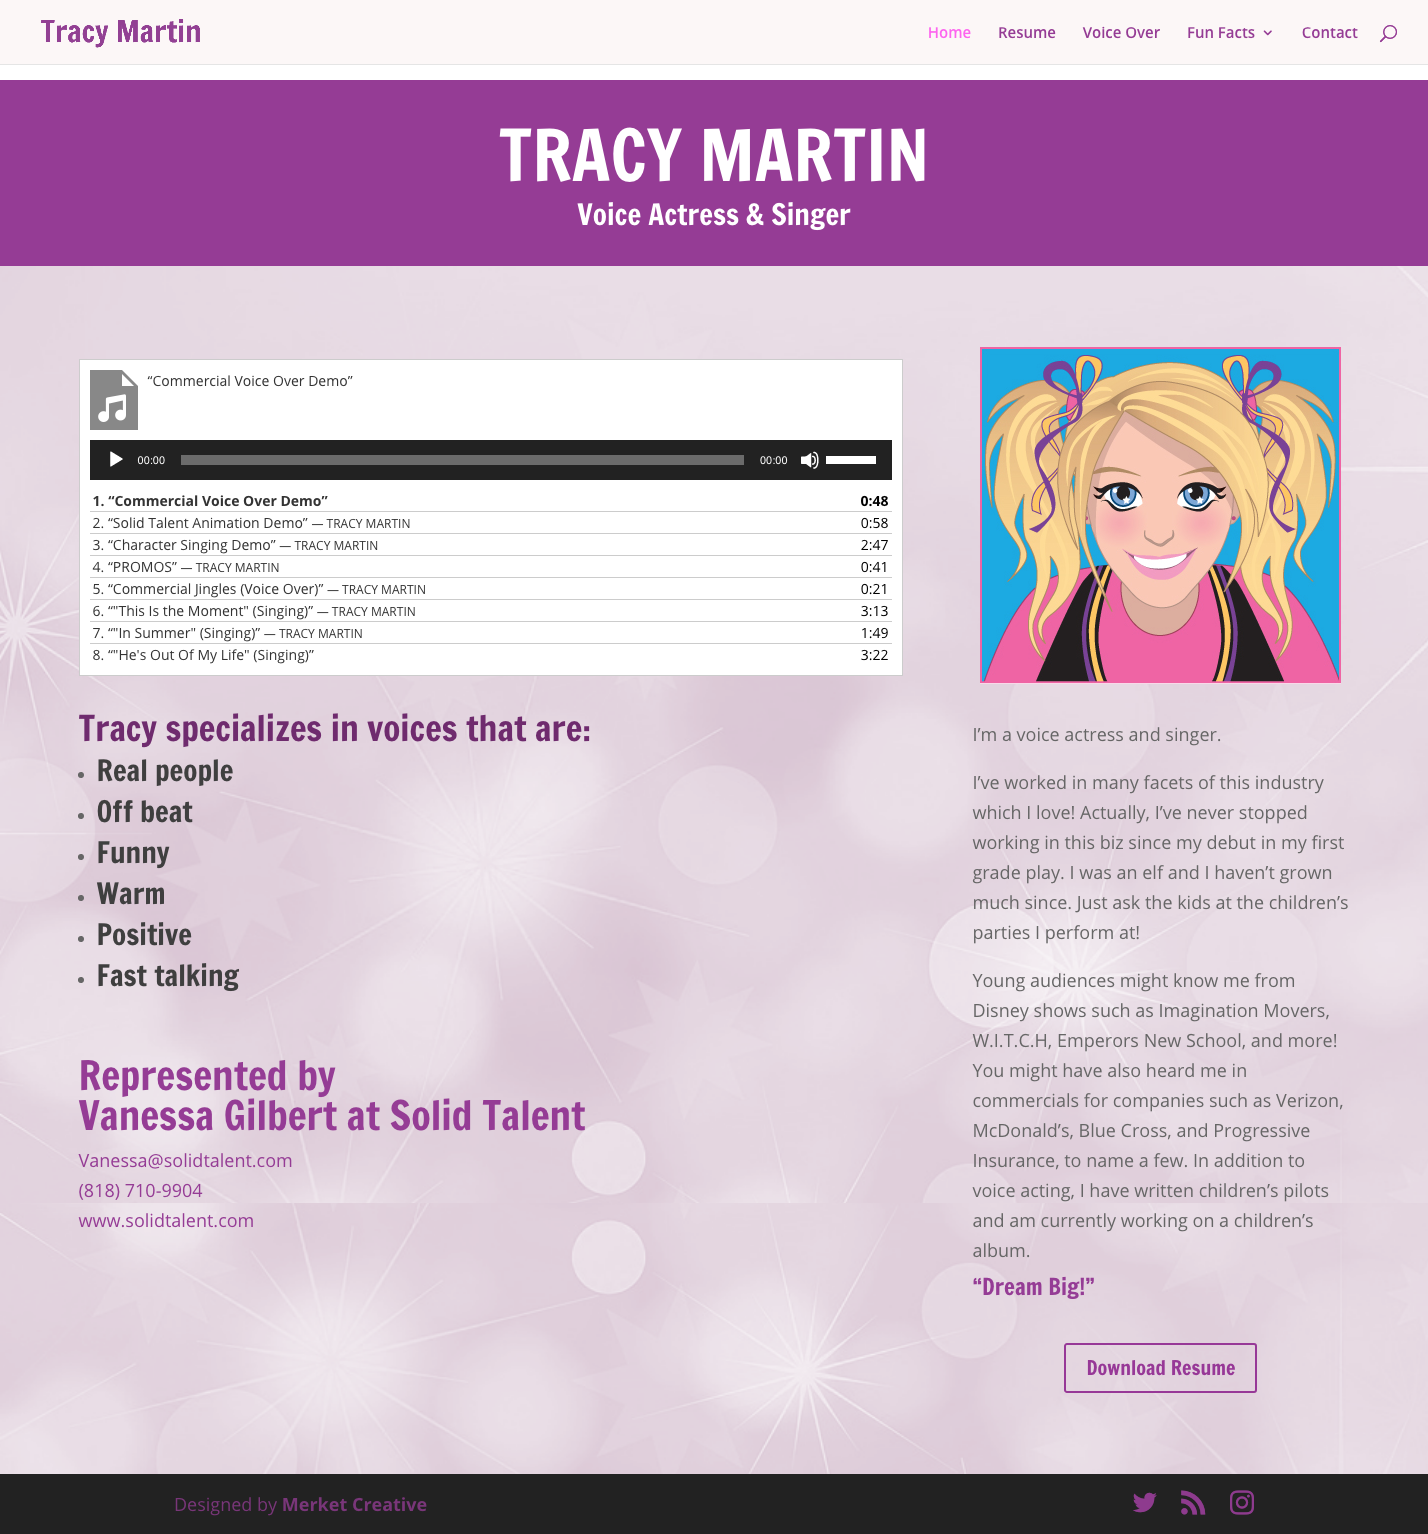 Tracy Martin Website